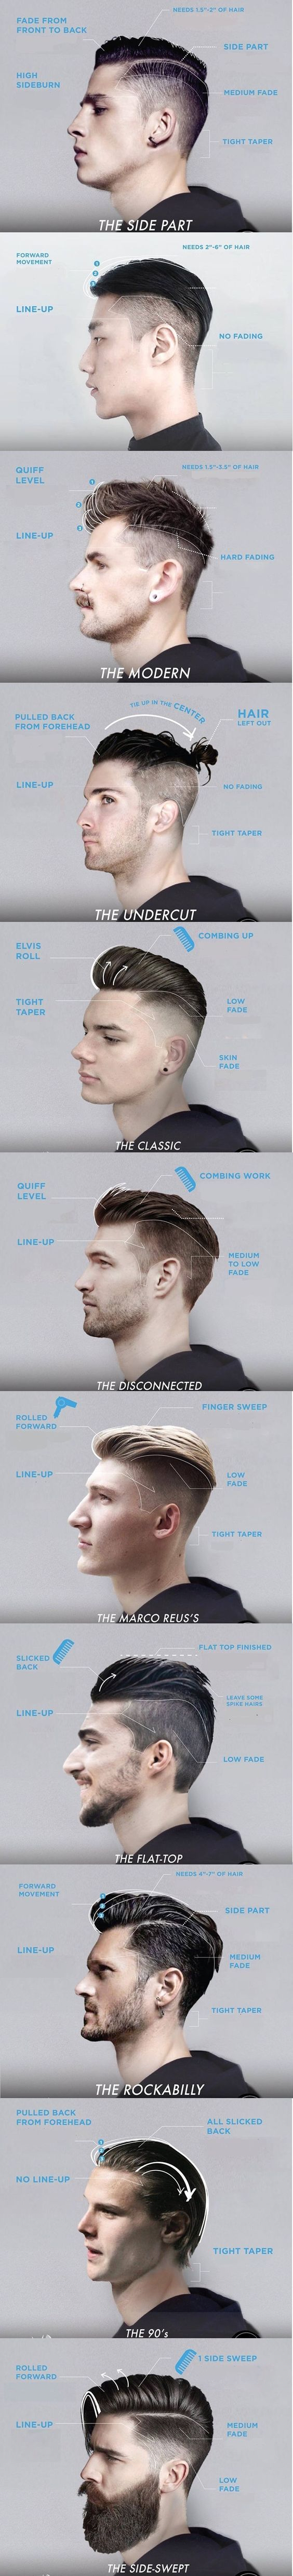 11 popular hairstyles requested by men now